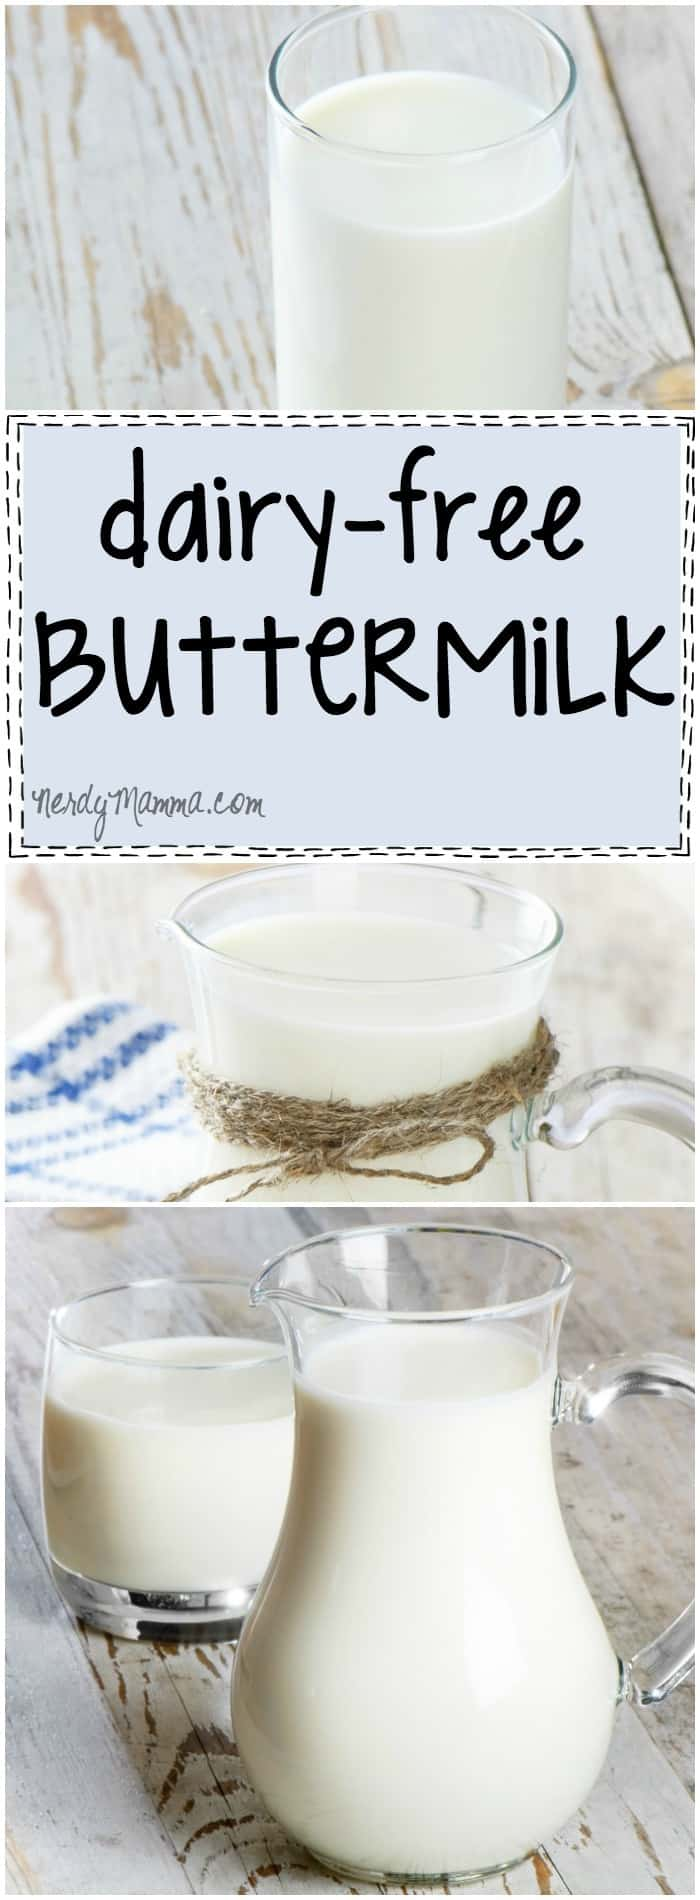 This recipe for dairy-free buttermilk is so easy. I had no idea. This opens-up so many possible baking scenarios now!